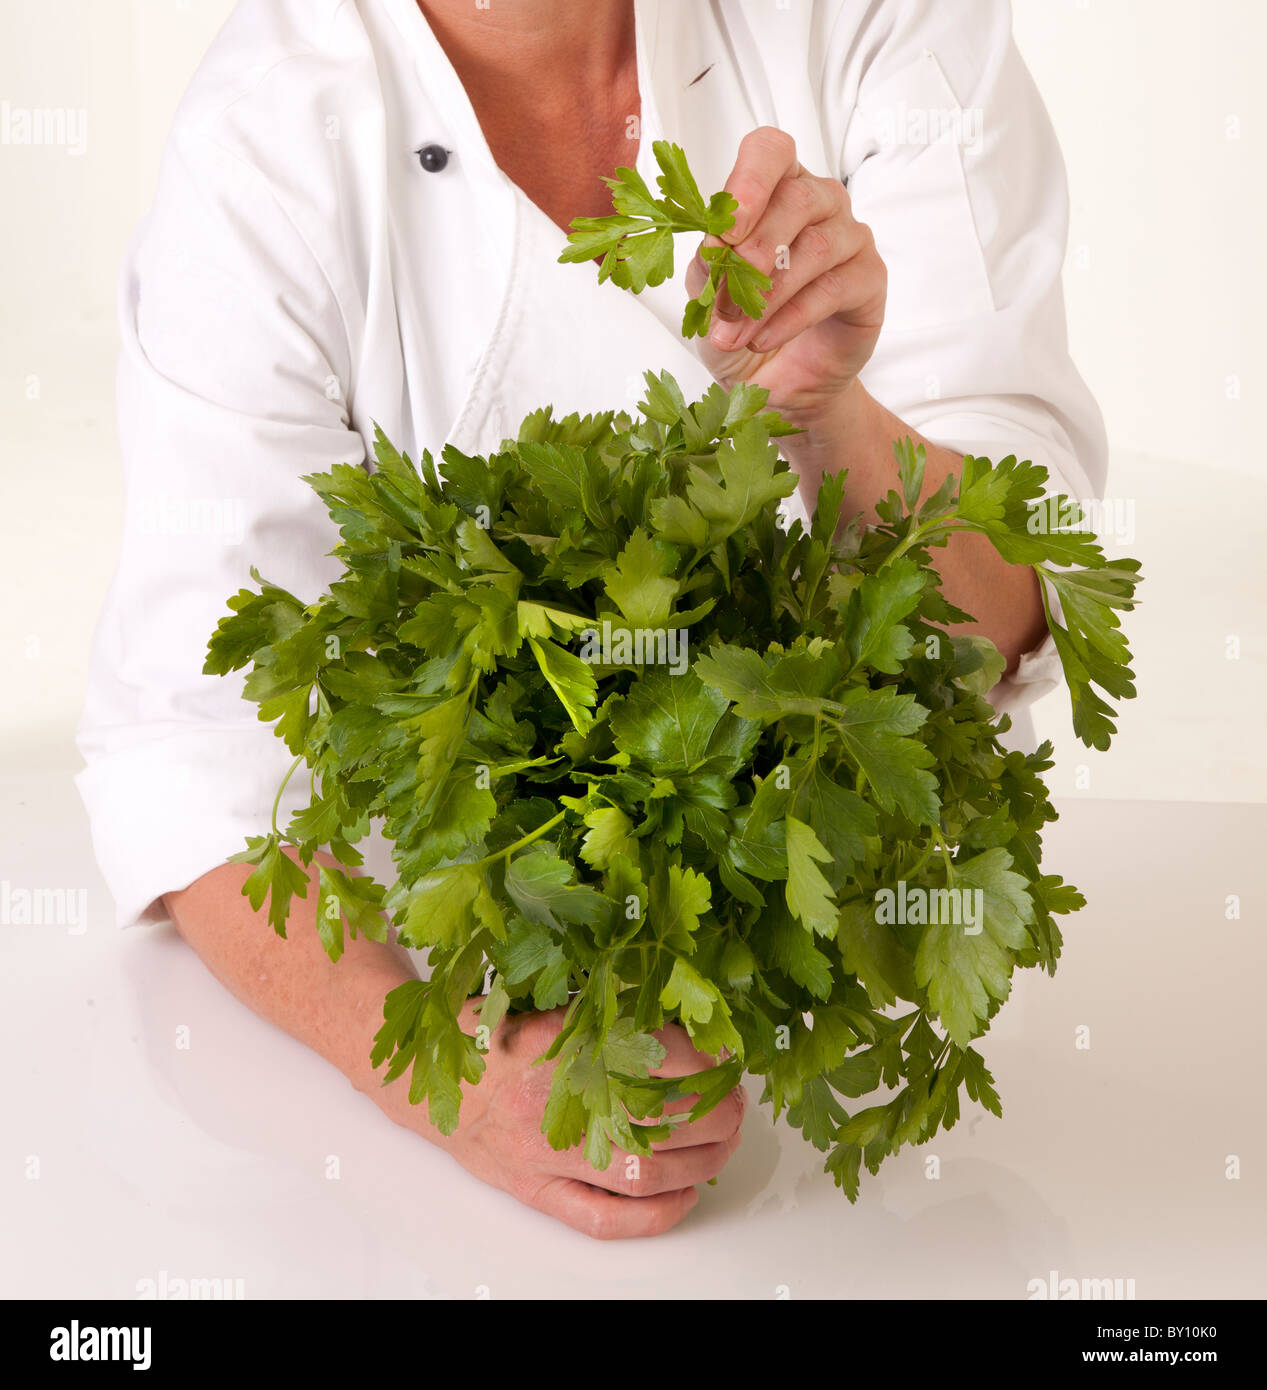 CHEF HOLDING BUNCH OF FRESH PARSLEY - Stock Image